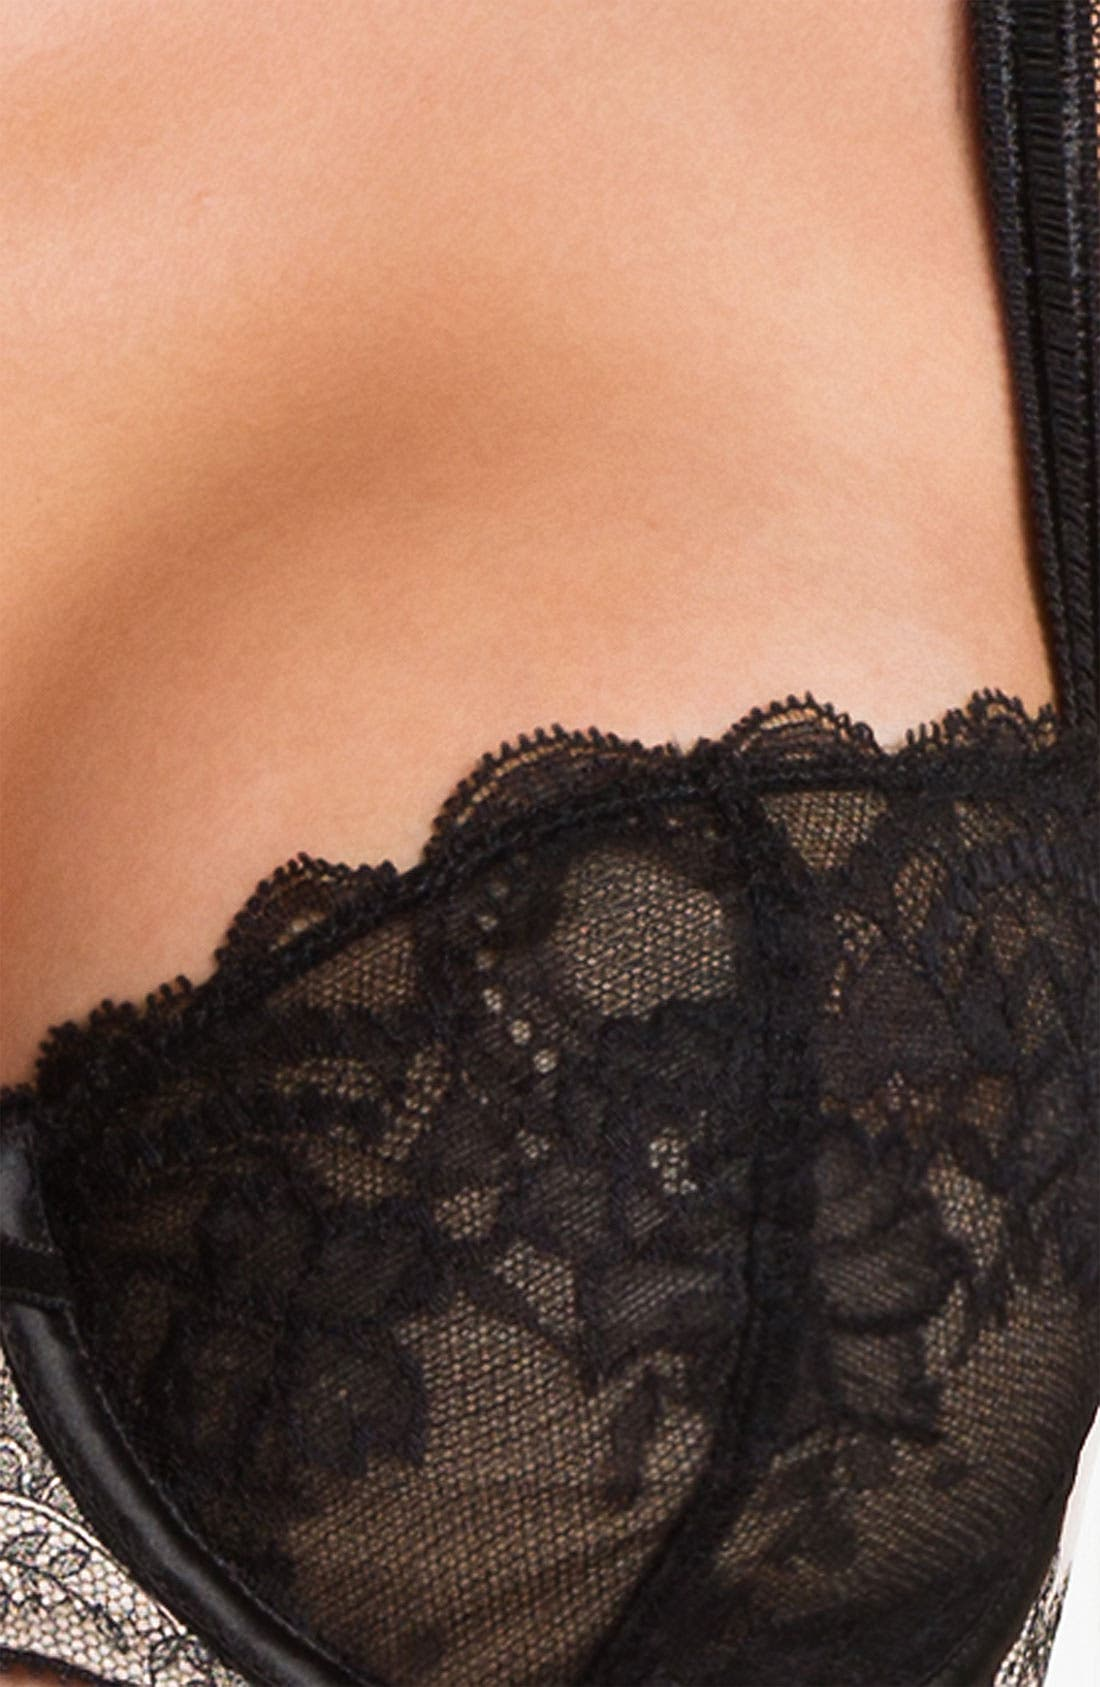 'Paris Paris' Underwire Demi Bra,                             Alternate thumbnail 2, color,                             010